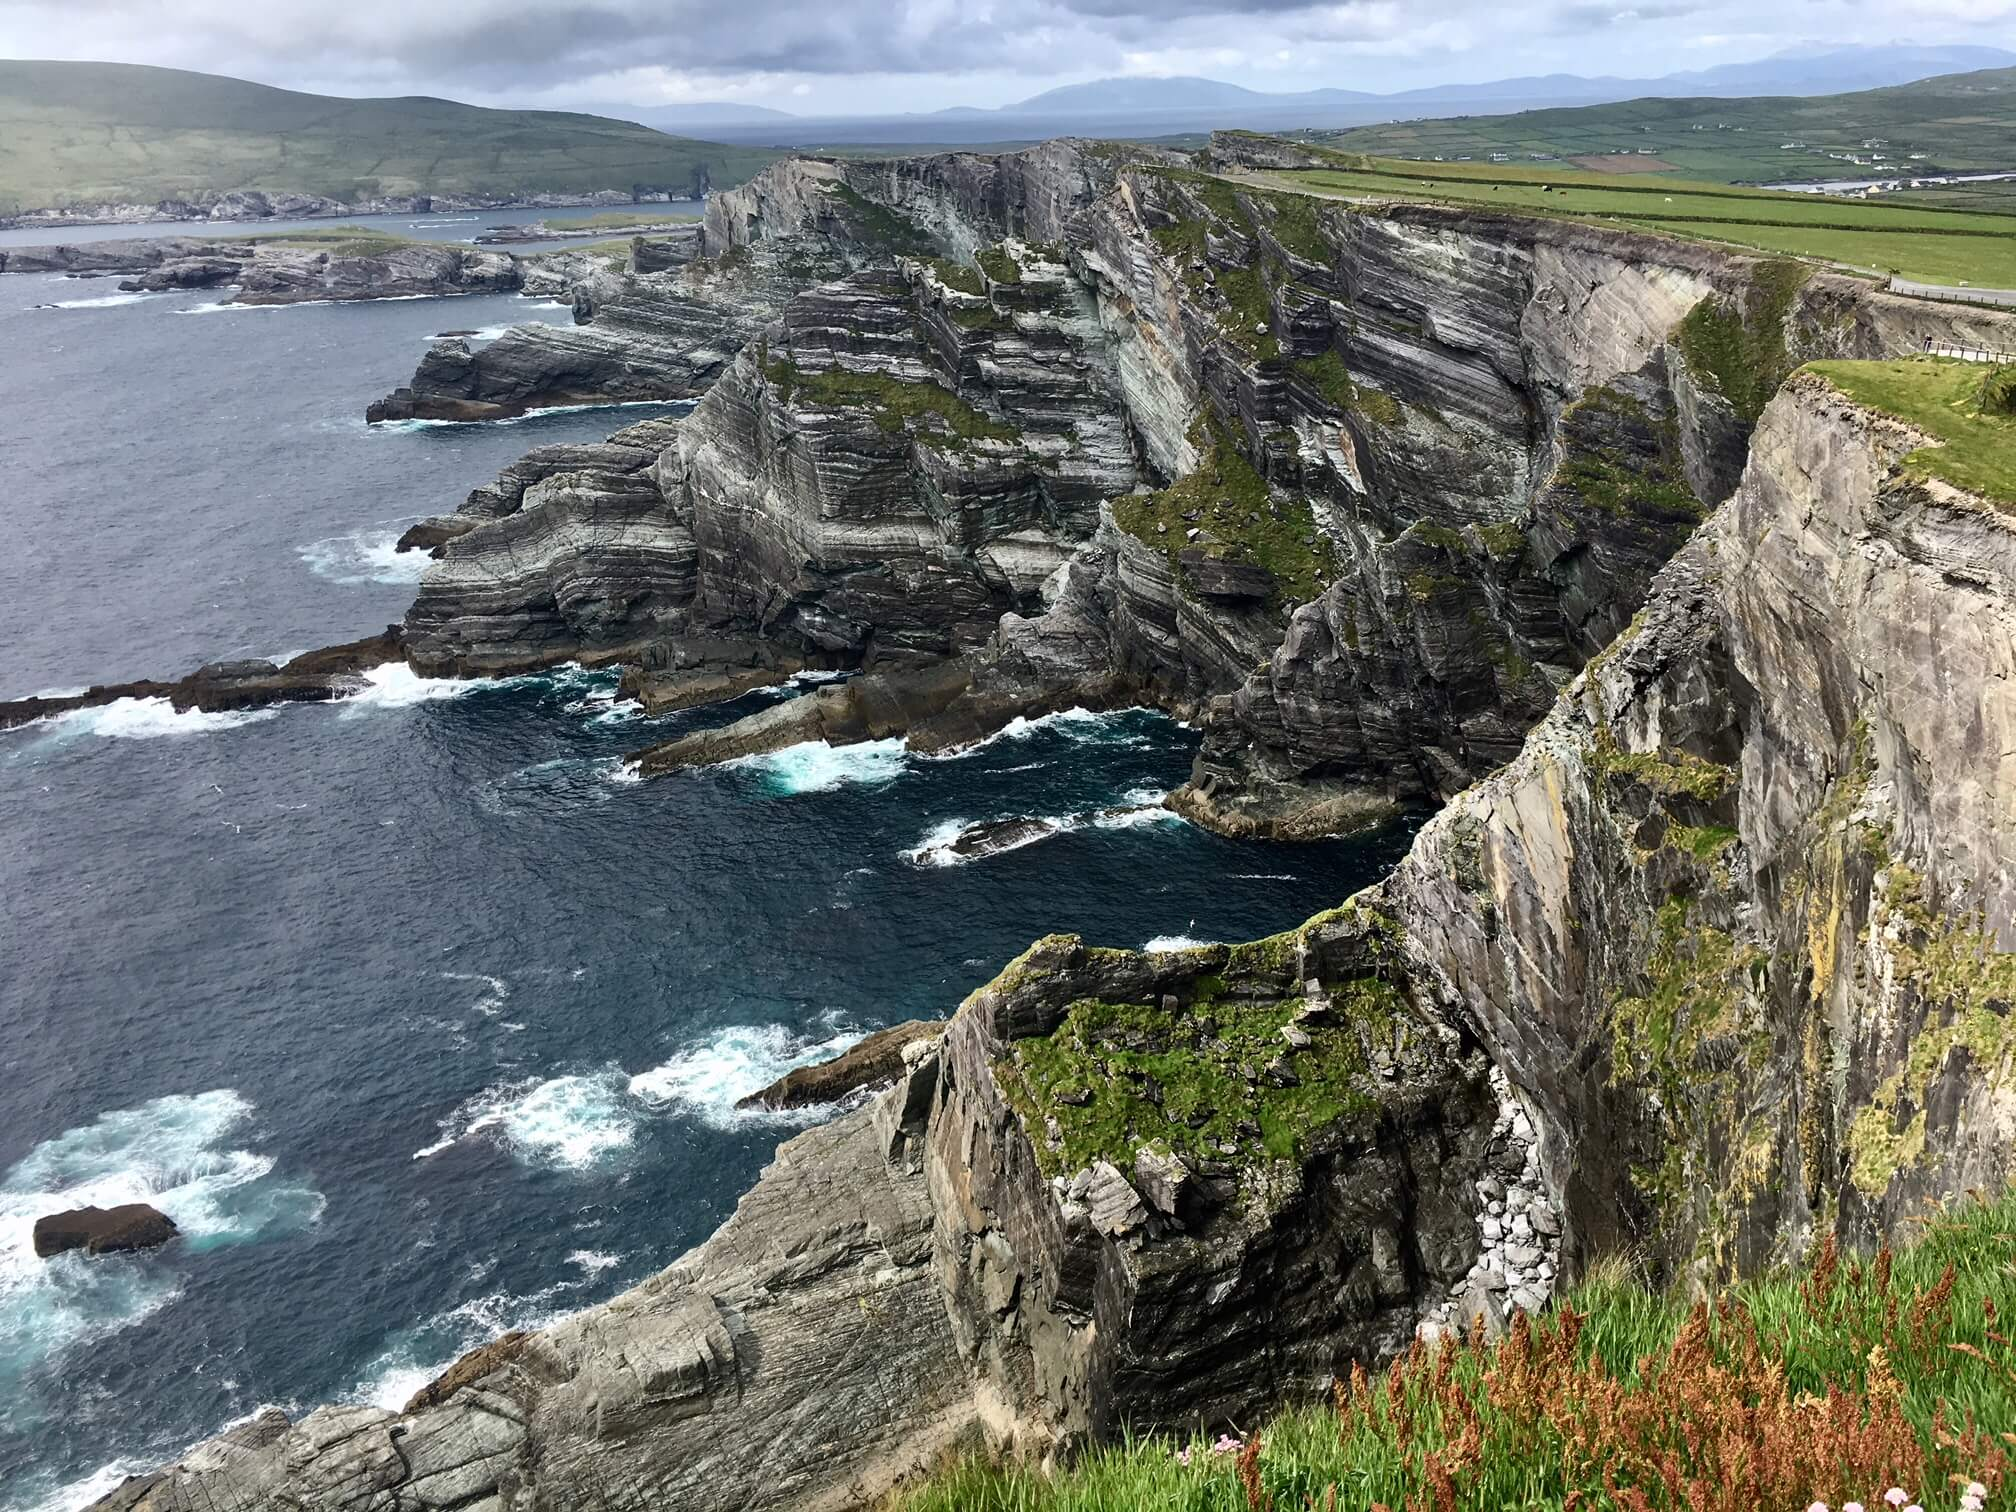 Cliffs of Portmagee